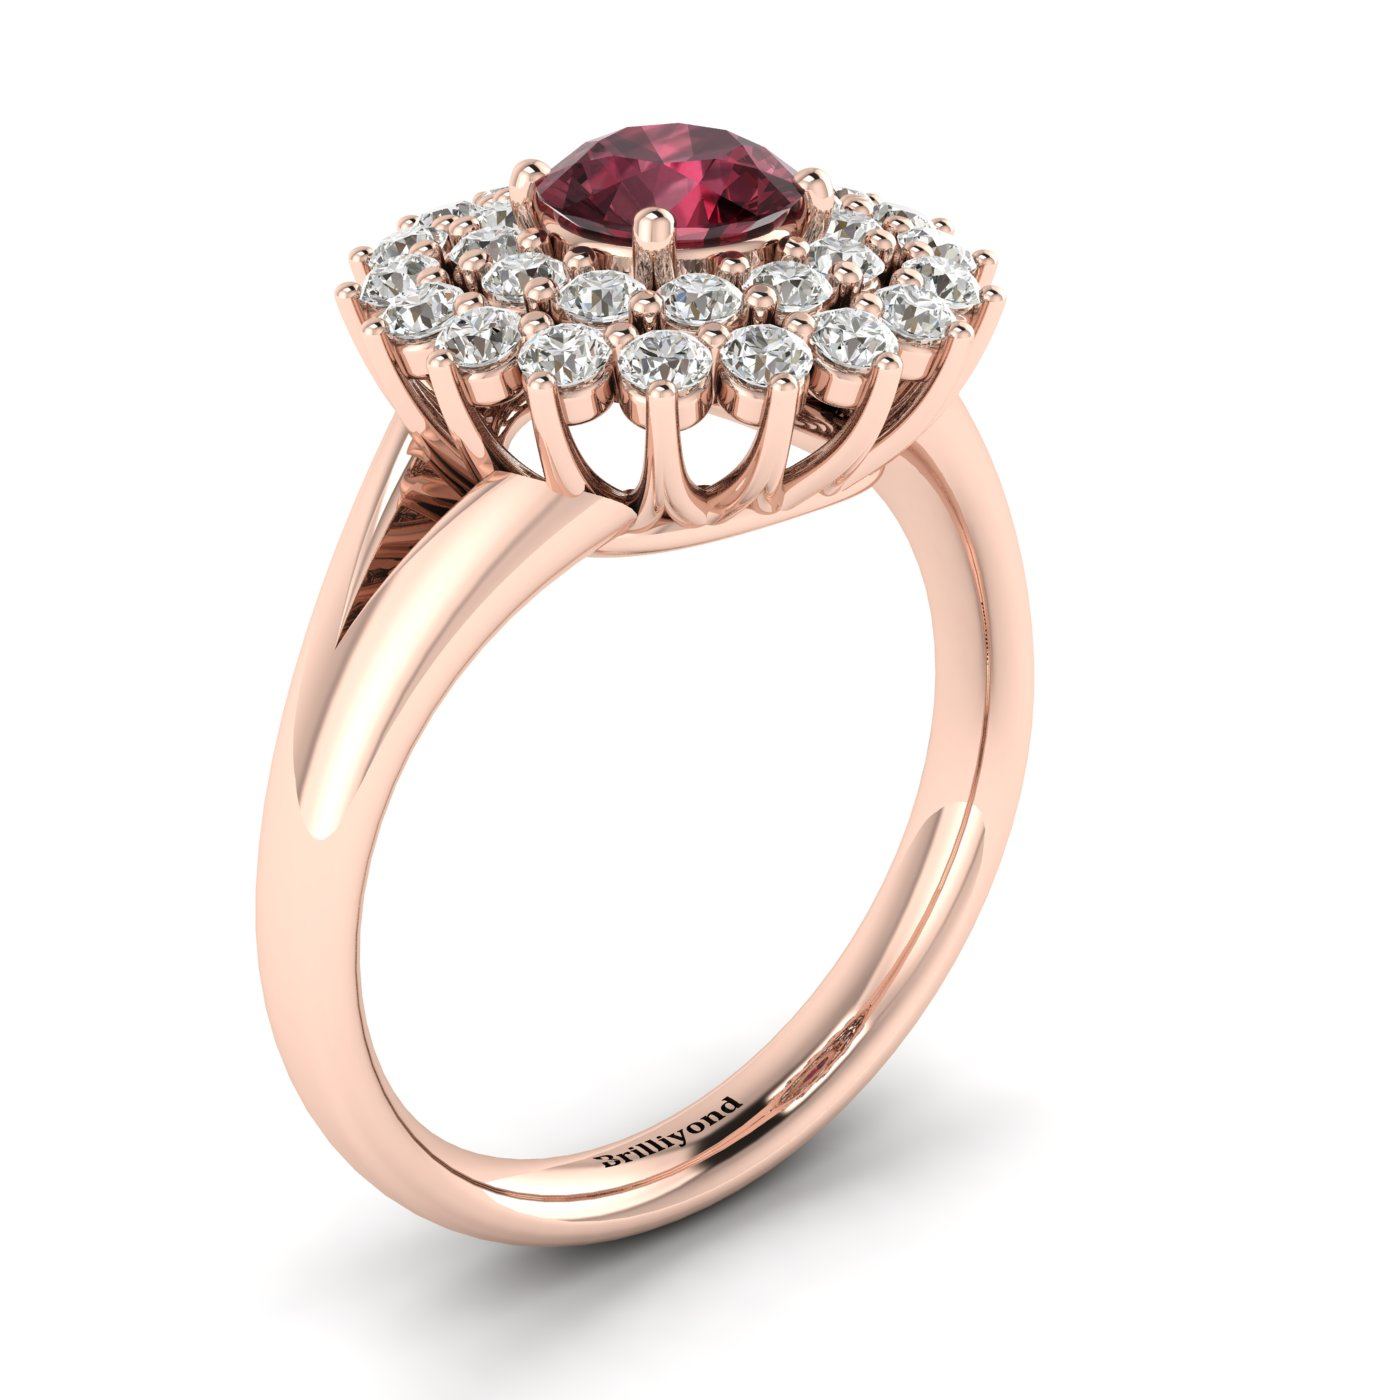 an engagement rings diamonds costagli paolo with garnet model ring rhodolite pink products gold